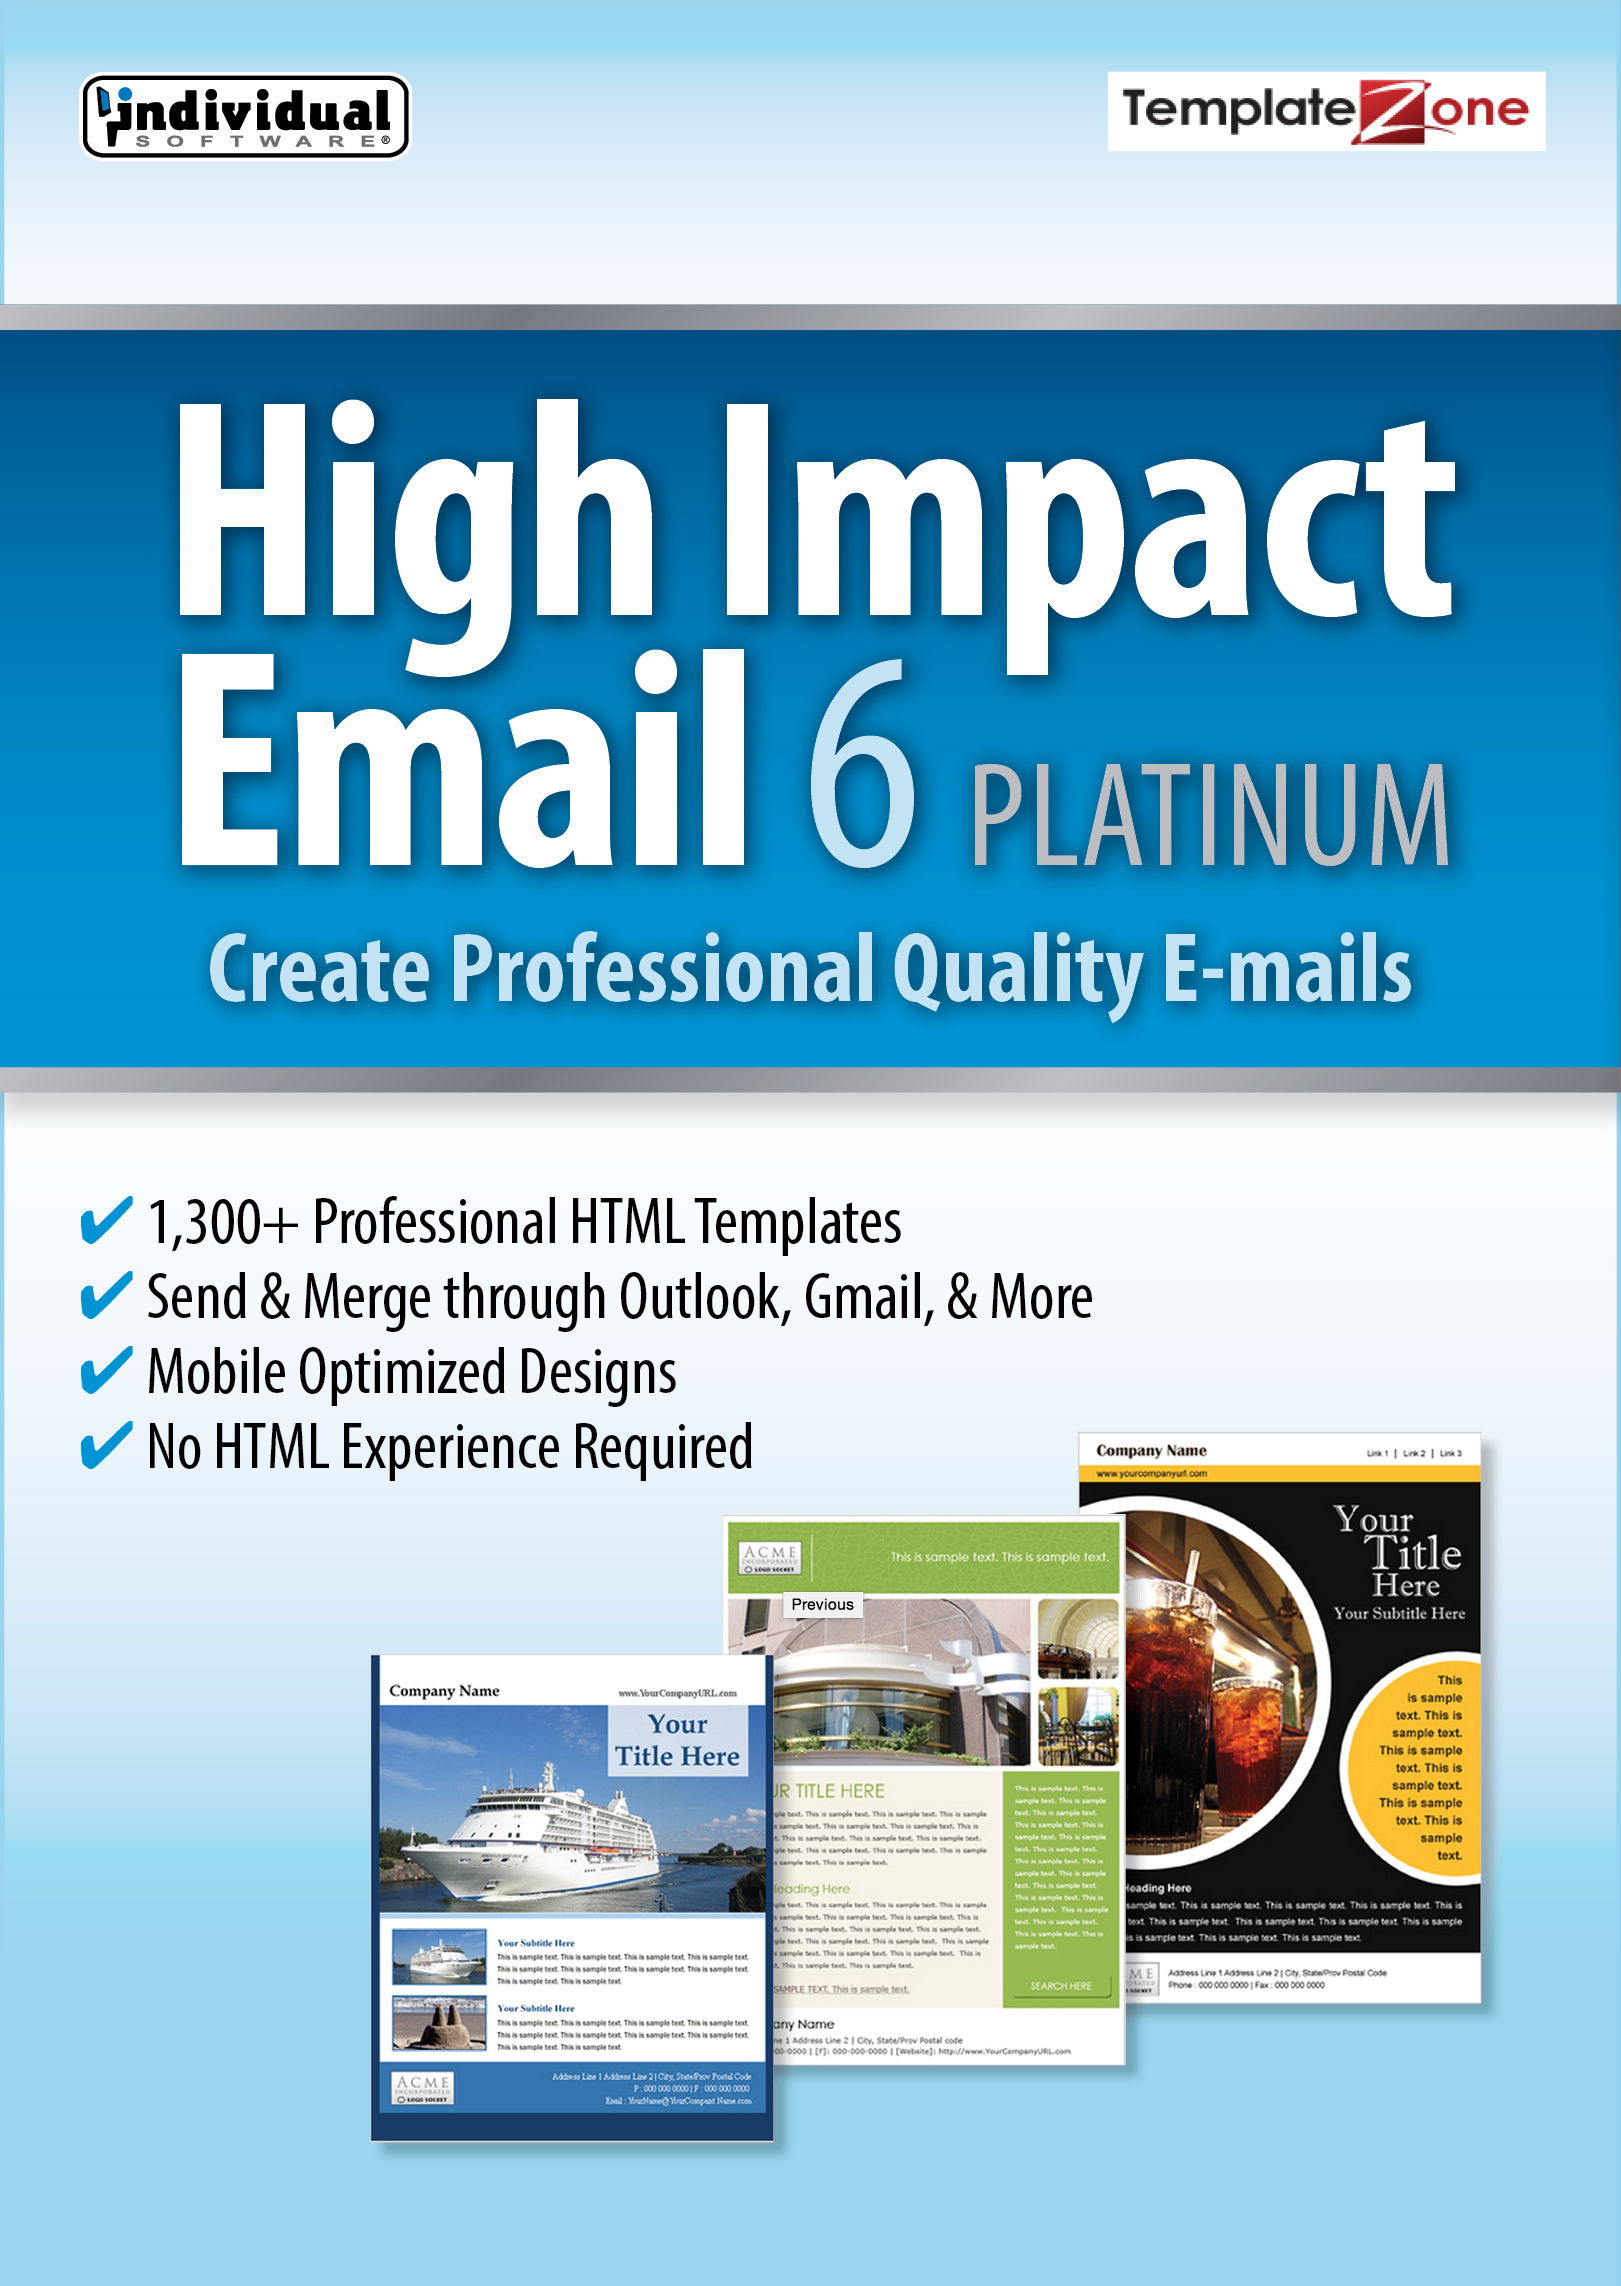 mailing list software - 8